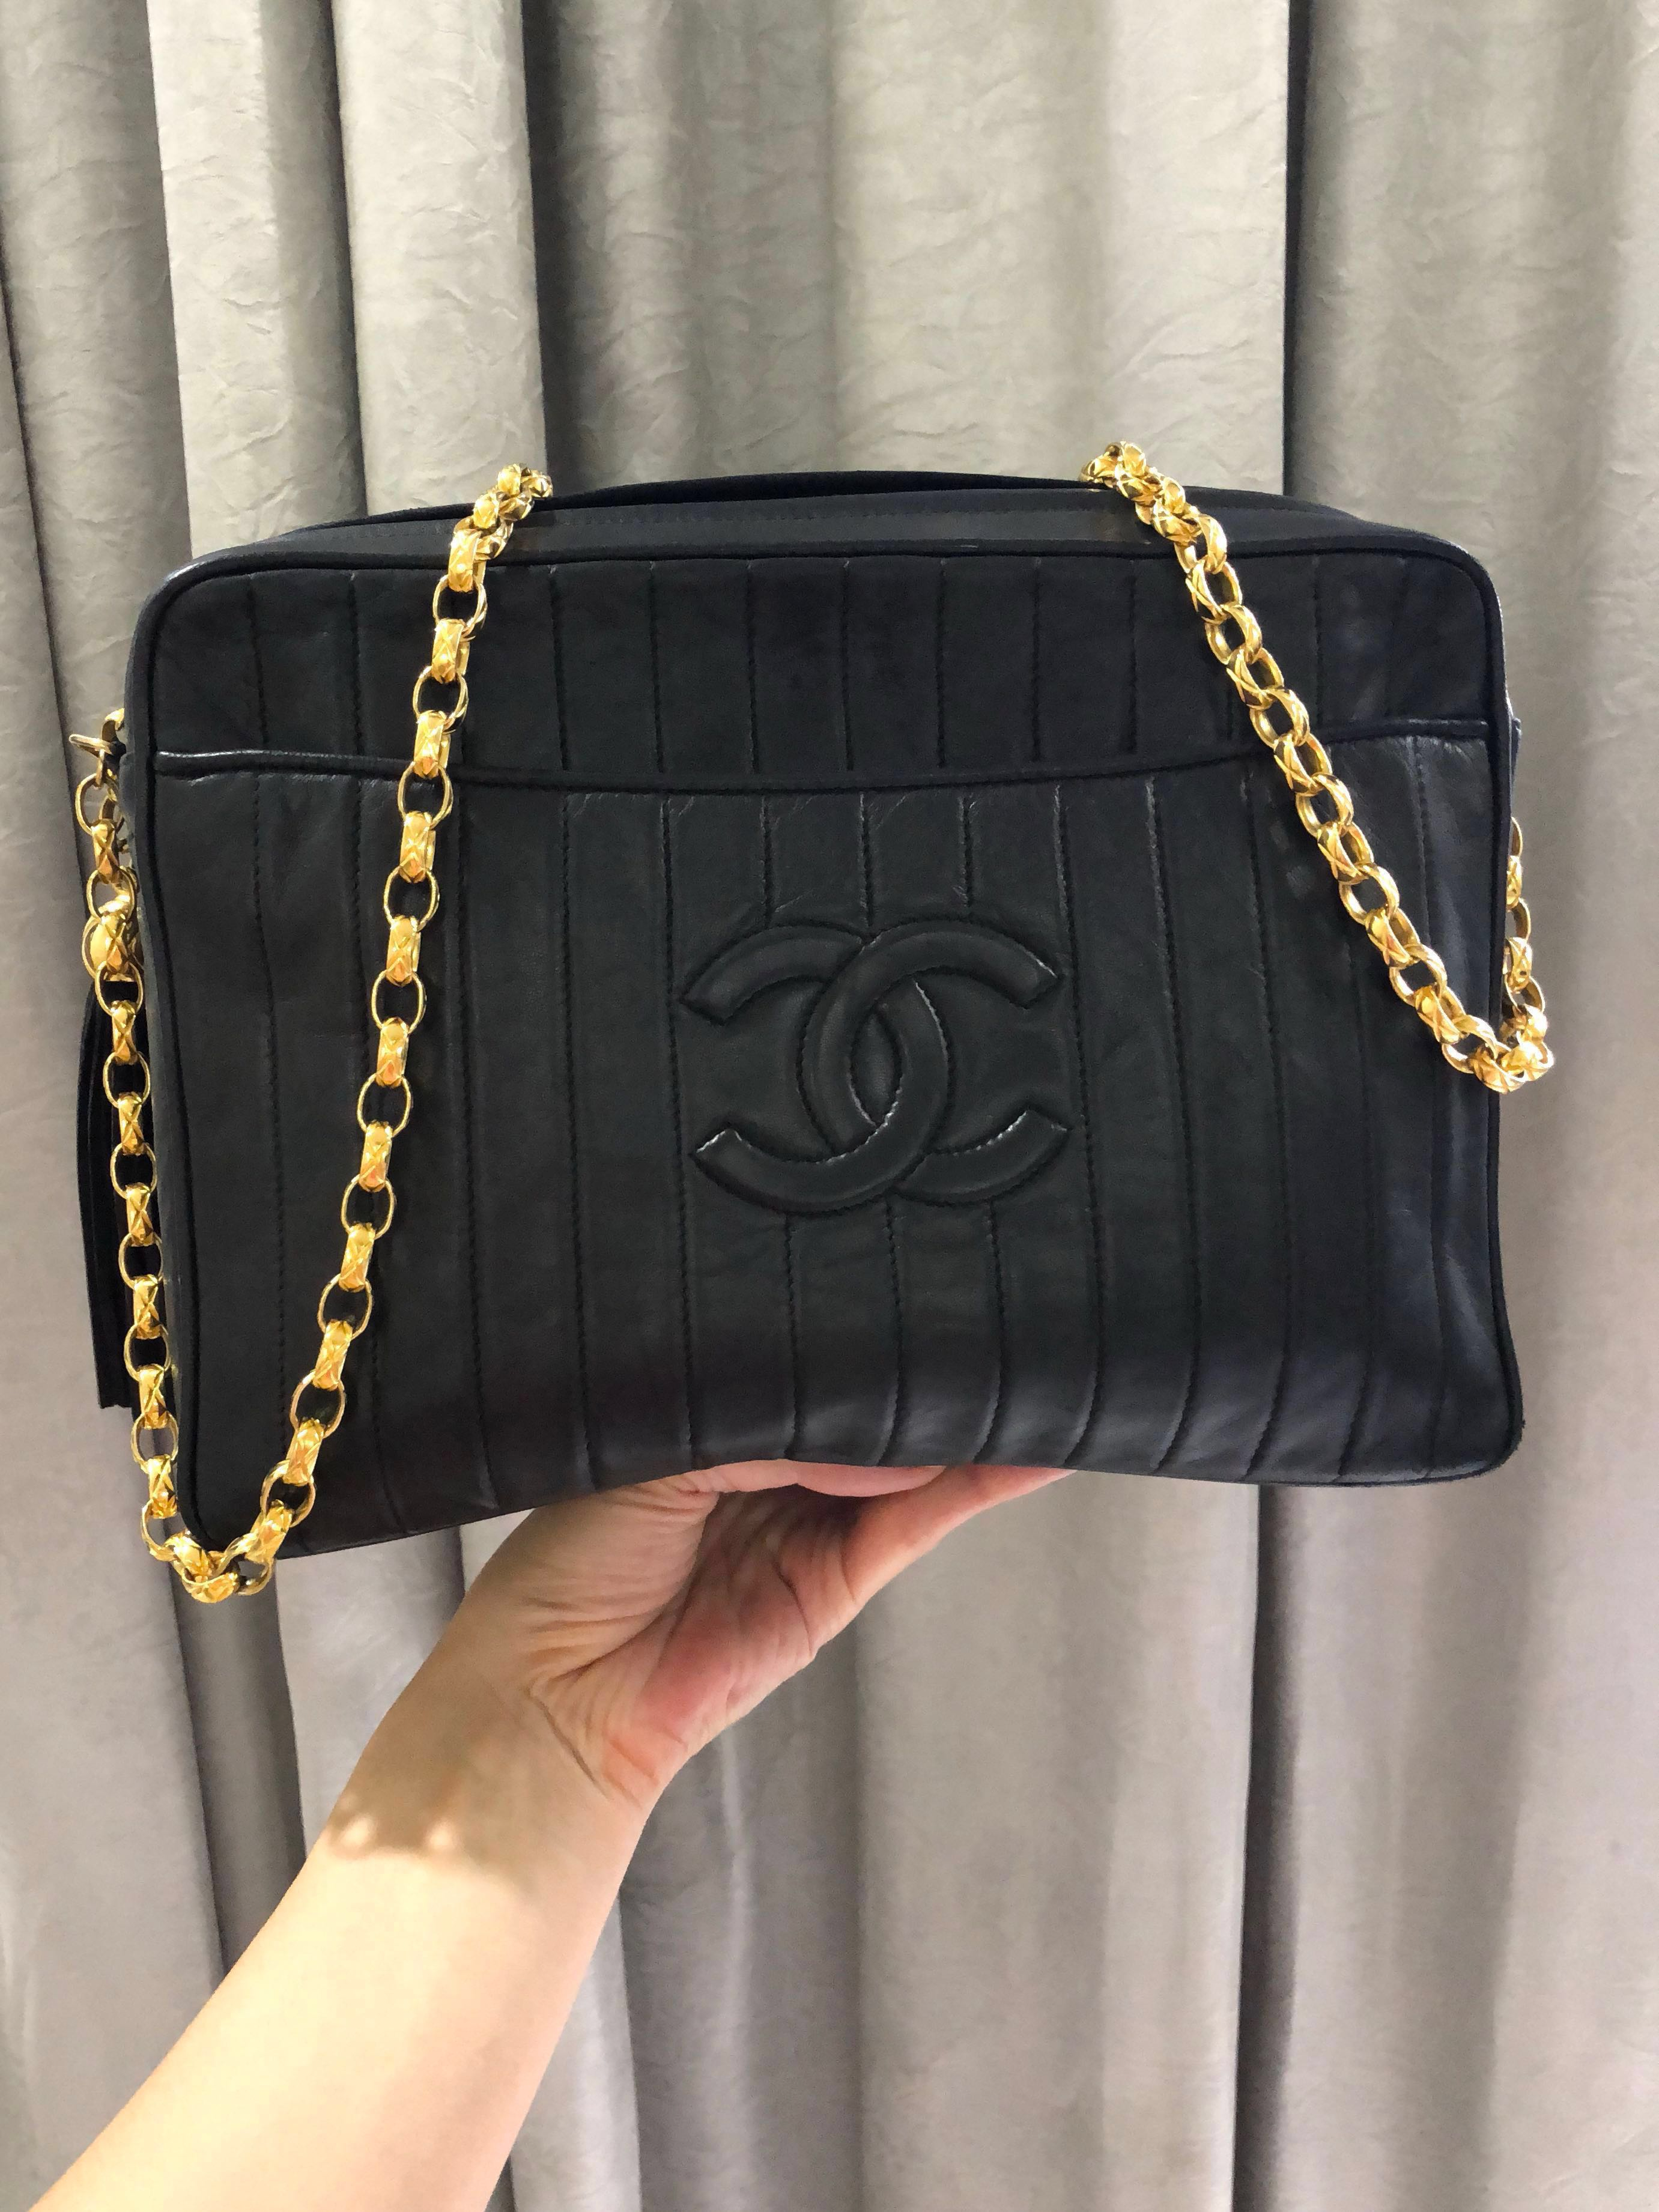 b40d4f438c97 Chanel Camera Bag with Bijoux Chain, Luxury, Bags & Wallets ...